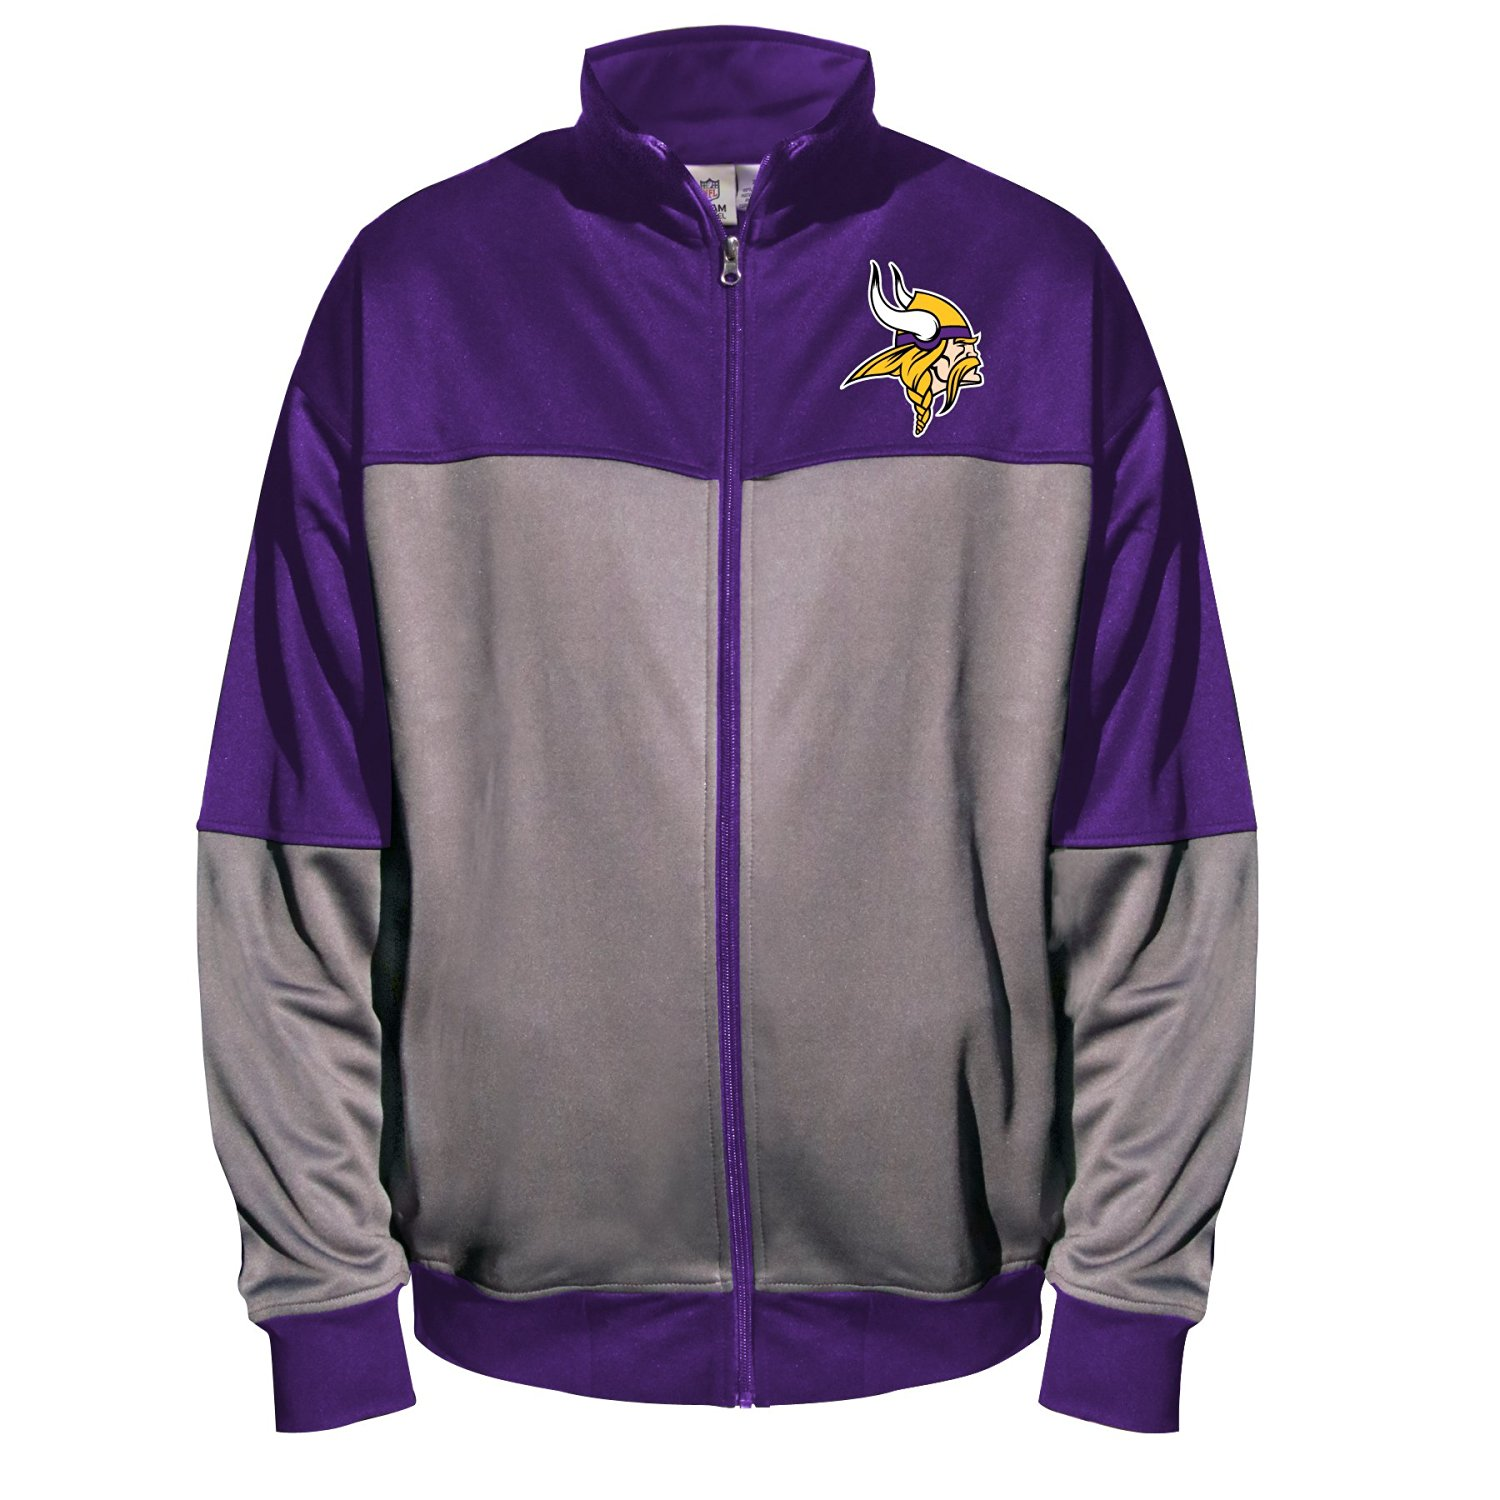 competitive price 8a91f a8e9d Cheap Vikings Jacket, find Vikings Jacket deals on line at ...